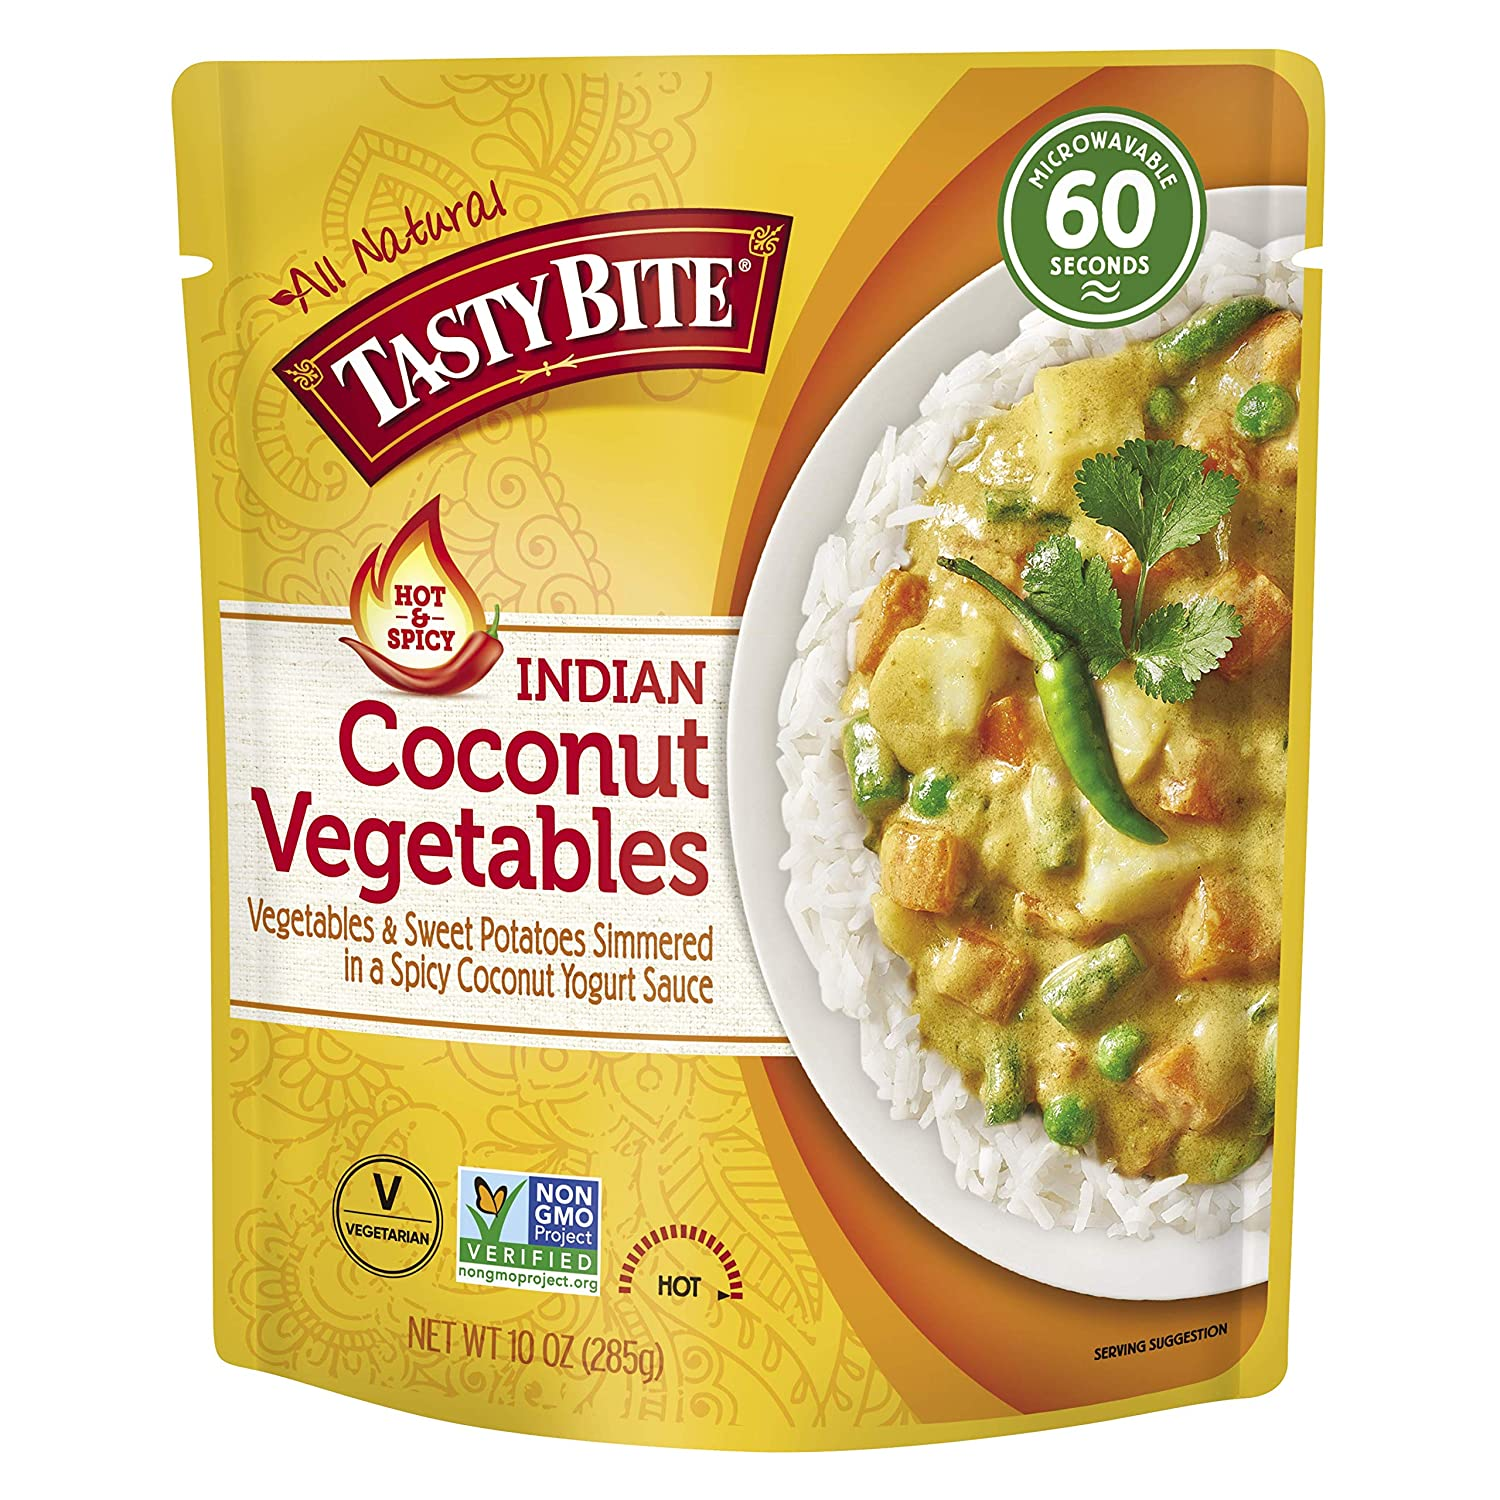 Tasty Bite Indian Hot and Spicy Coconut Vegetables, Microwaveable Ready to Eat Entrée, 10 Ounce (Pack of 6)